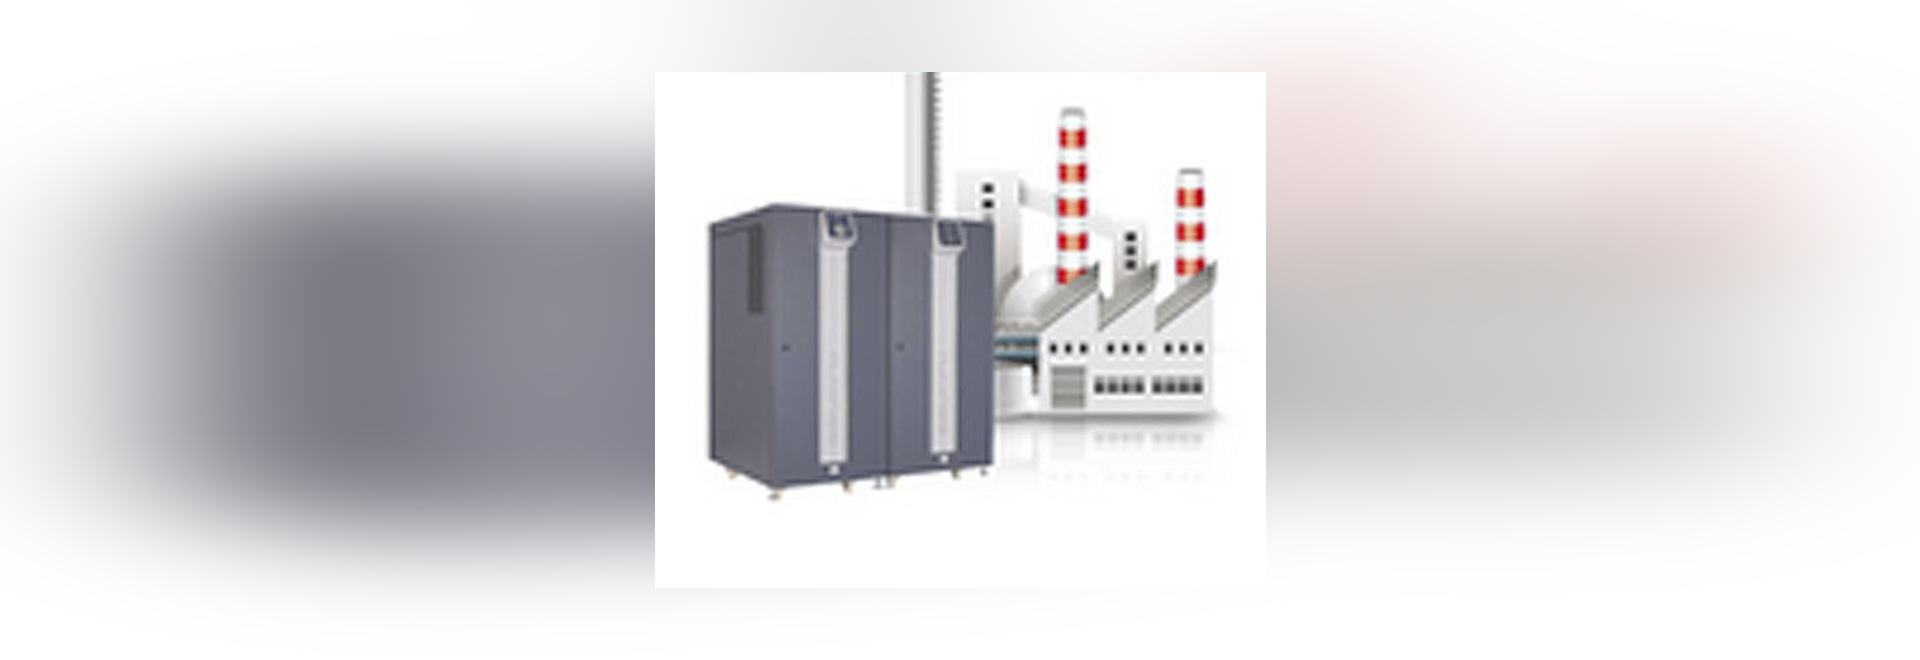 CF CUBE3+, the frequency converters equipped to protect any environment